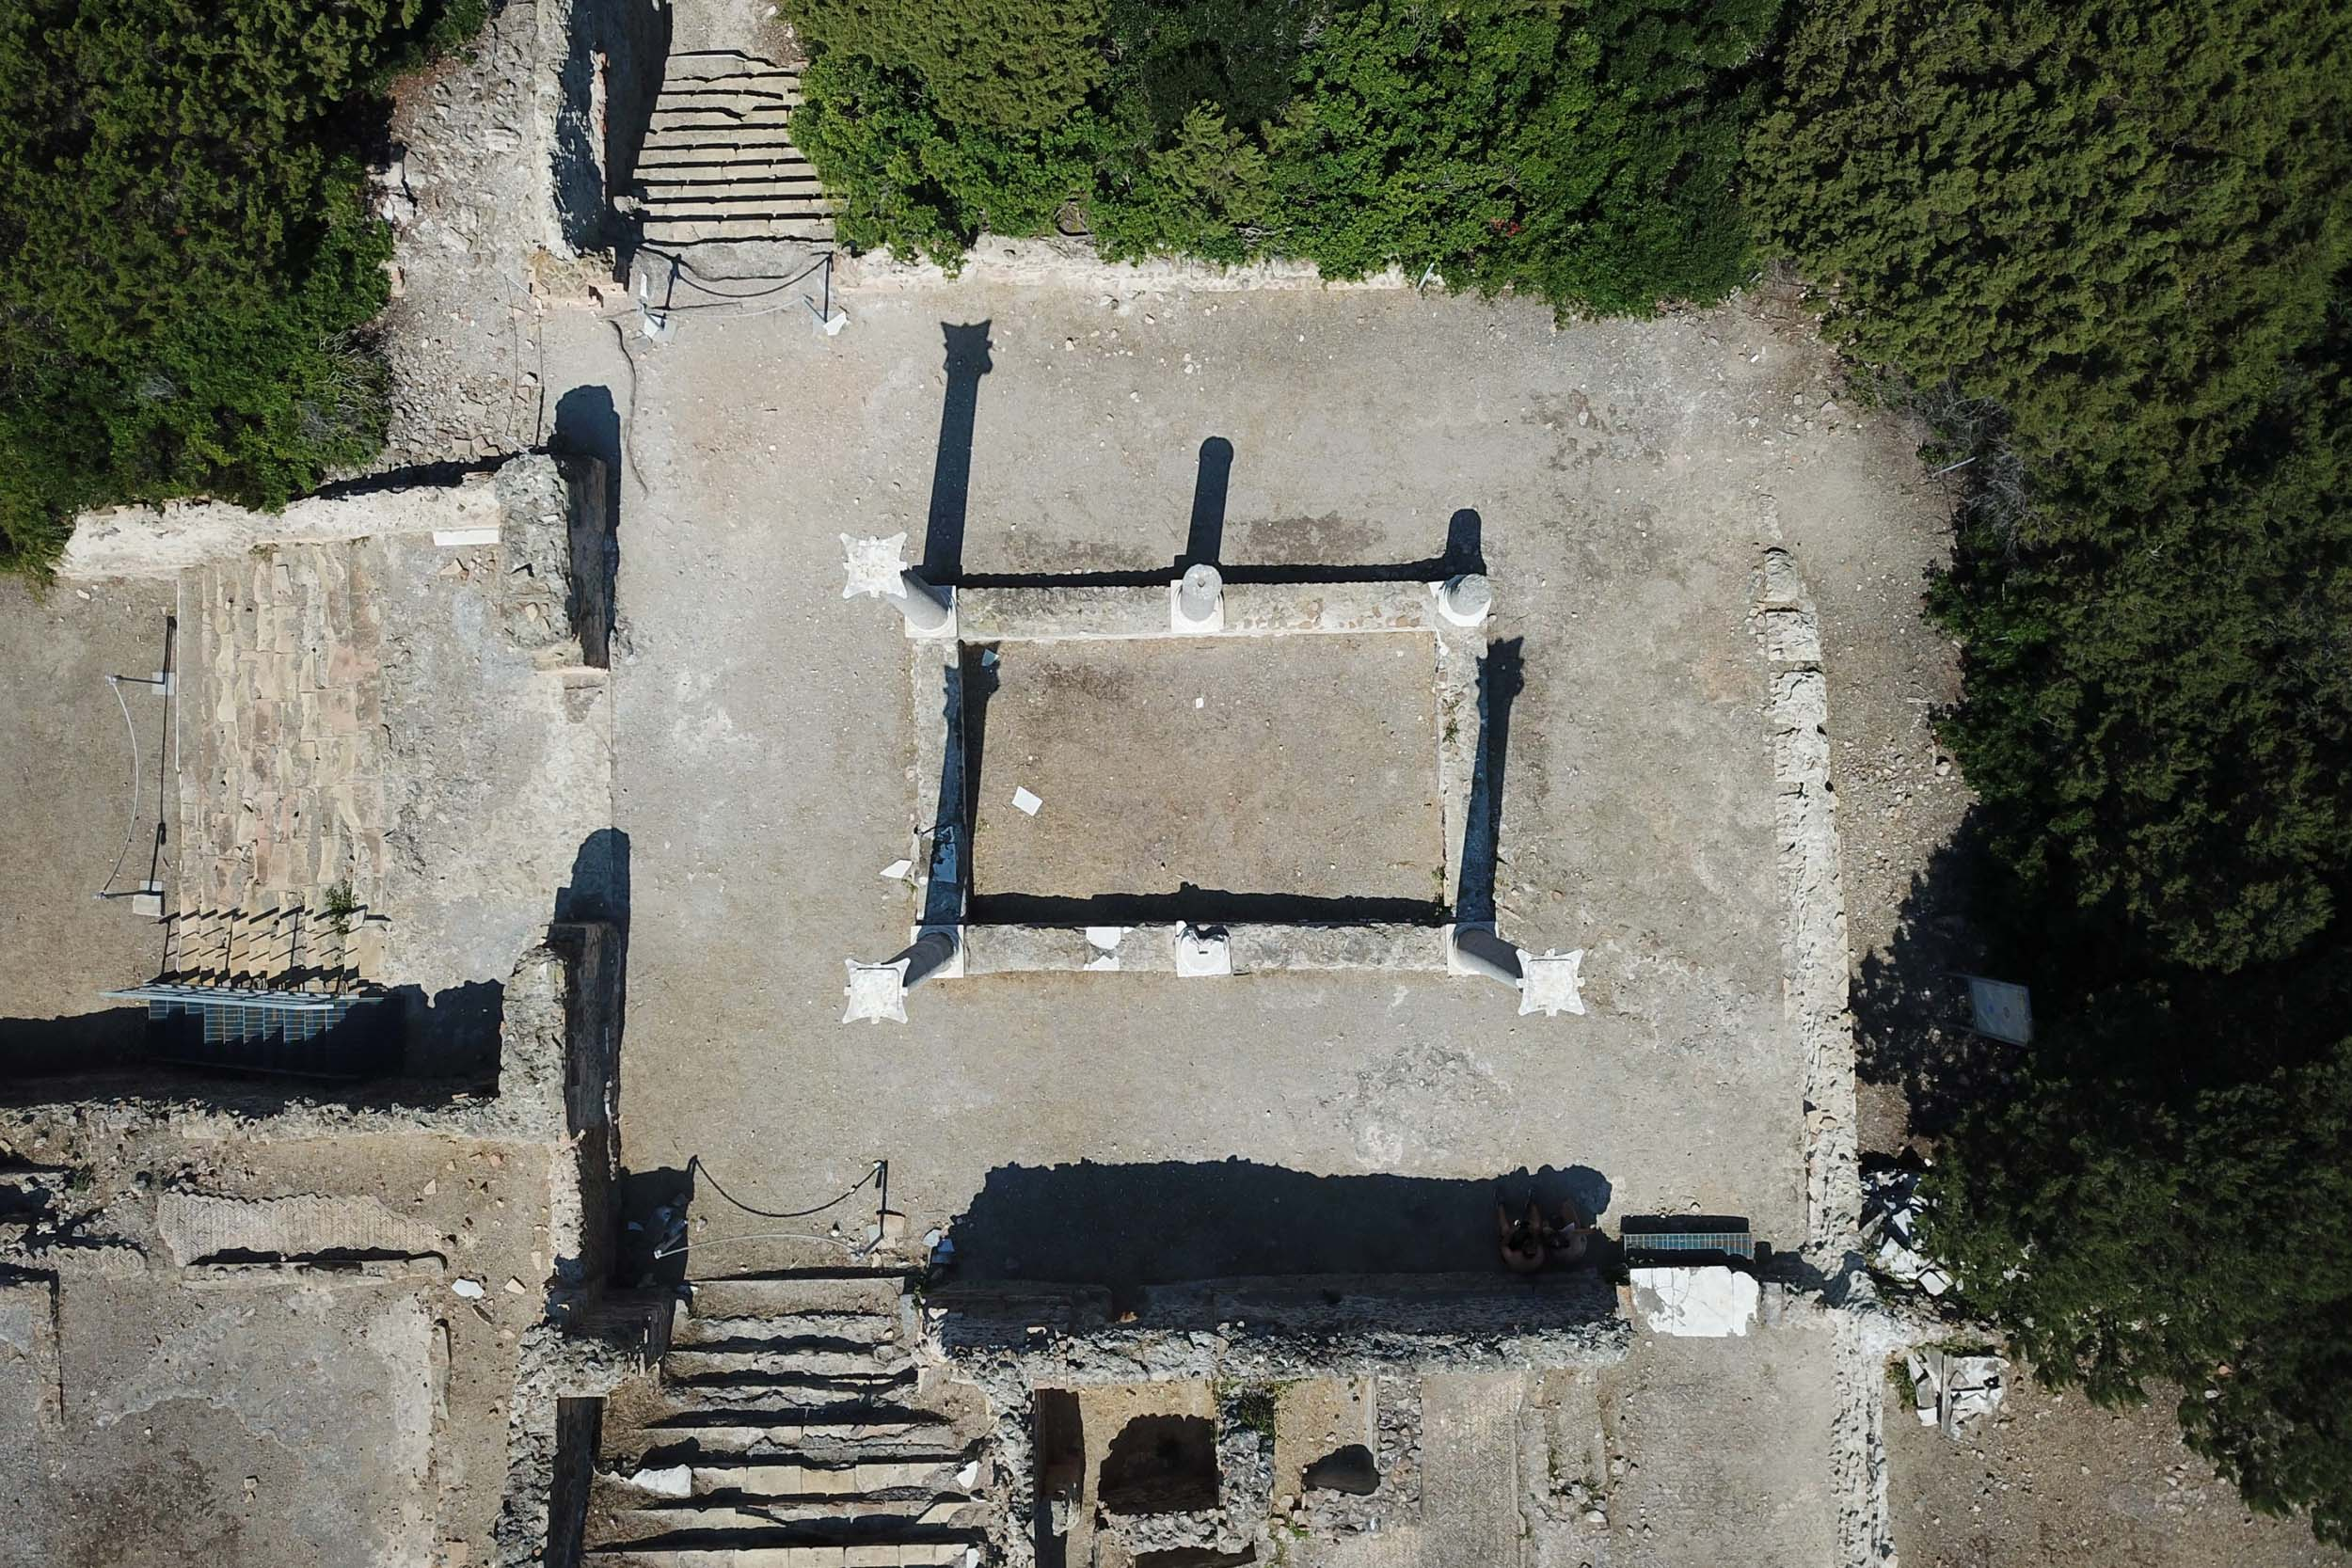 Giorgis' team used drone photography to capture the ruins from the air, compiling a detail record of their layout and current state.